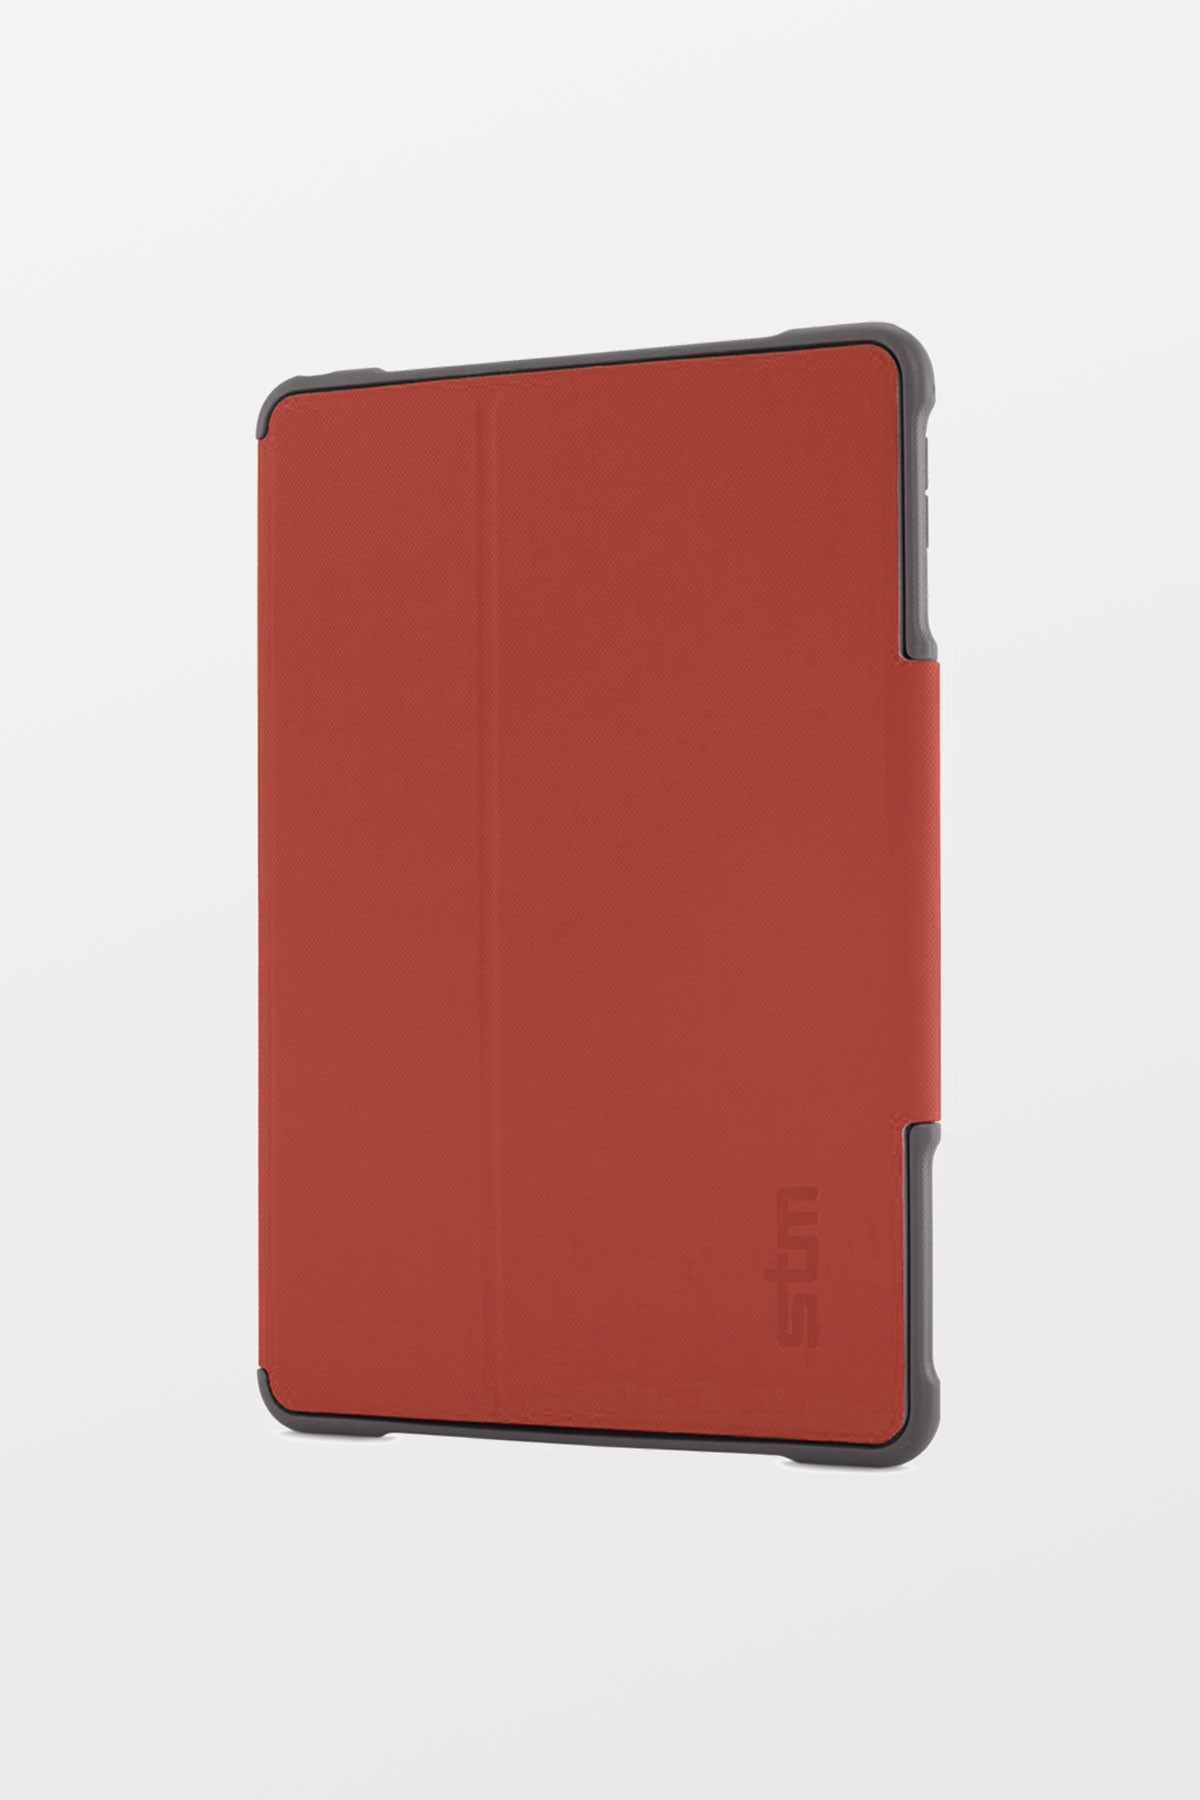 STM Dux for iPad Air - Red